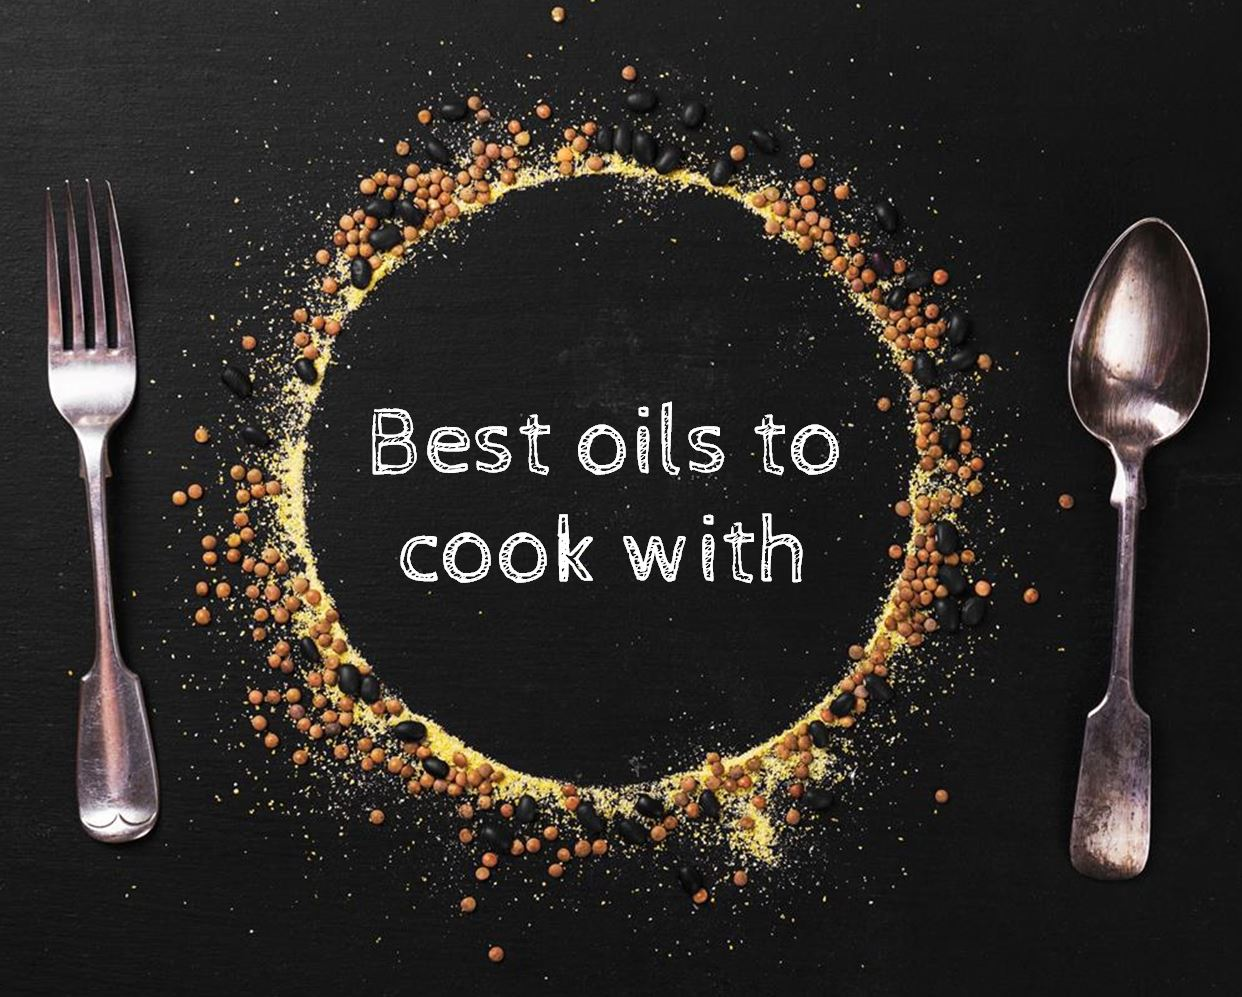 The best oils to cook with